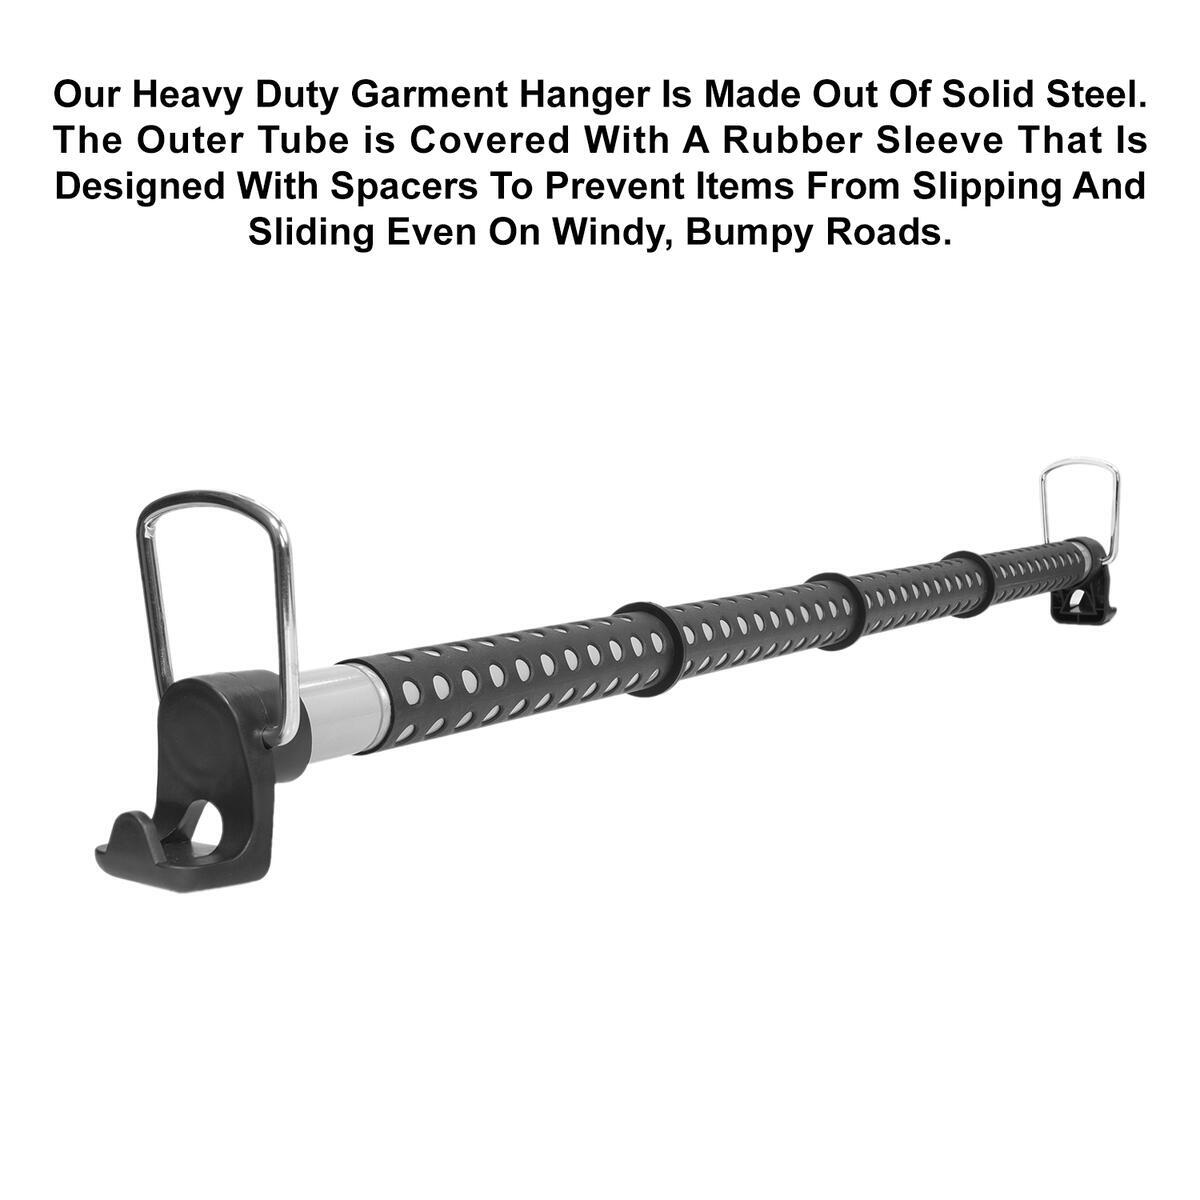 Car Clothes Hanger Bar, Expandable and Retractable Vehicle Clothing Rack for Traveling, Heavy Duty Garment Hanger, Car Clothing Rod Made with Strong Metal and Solid Rubber Grips and Spacers